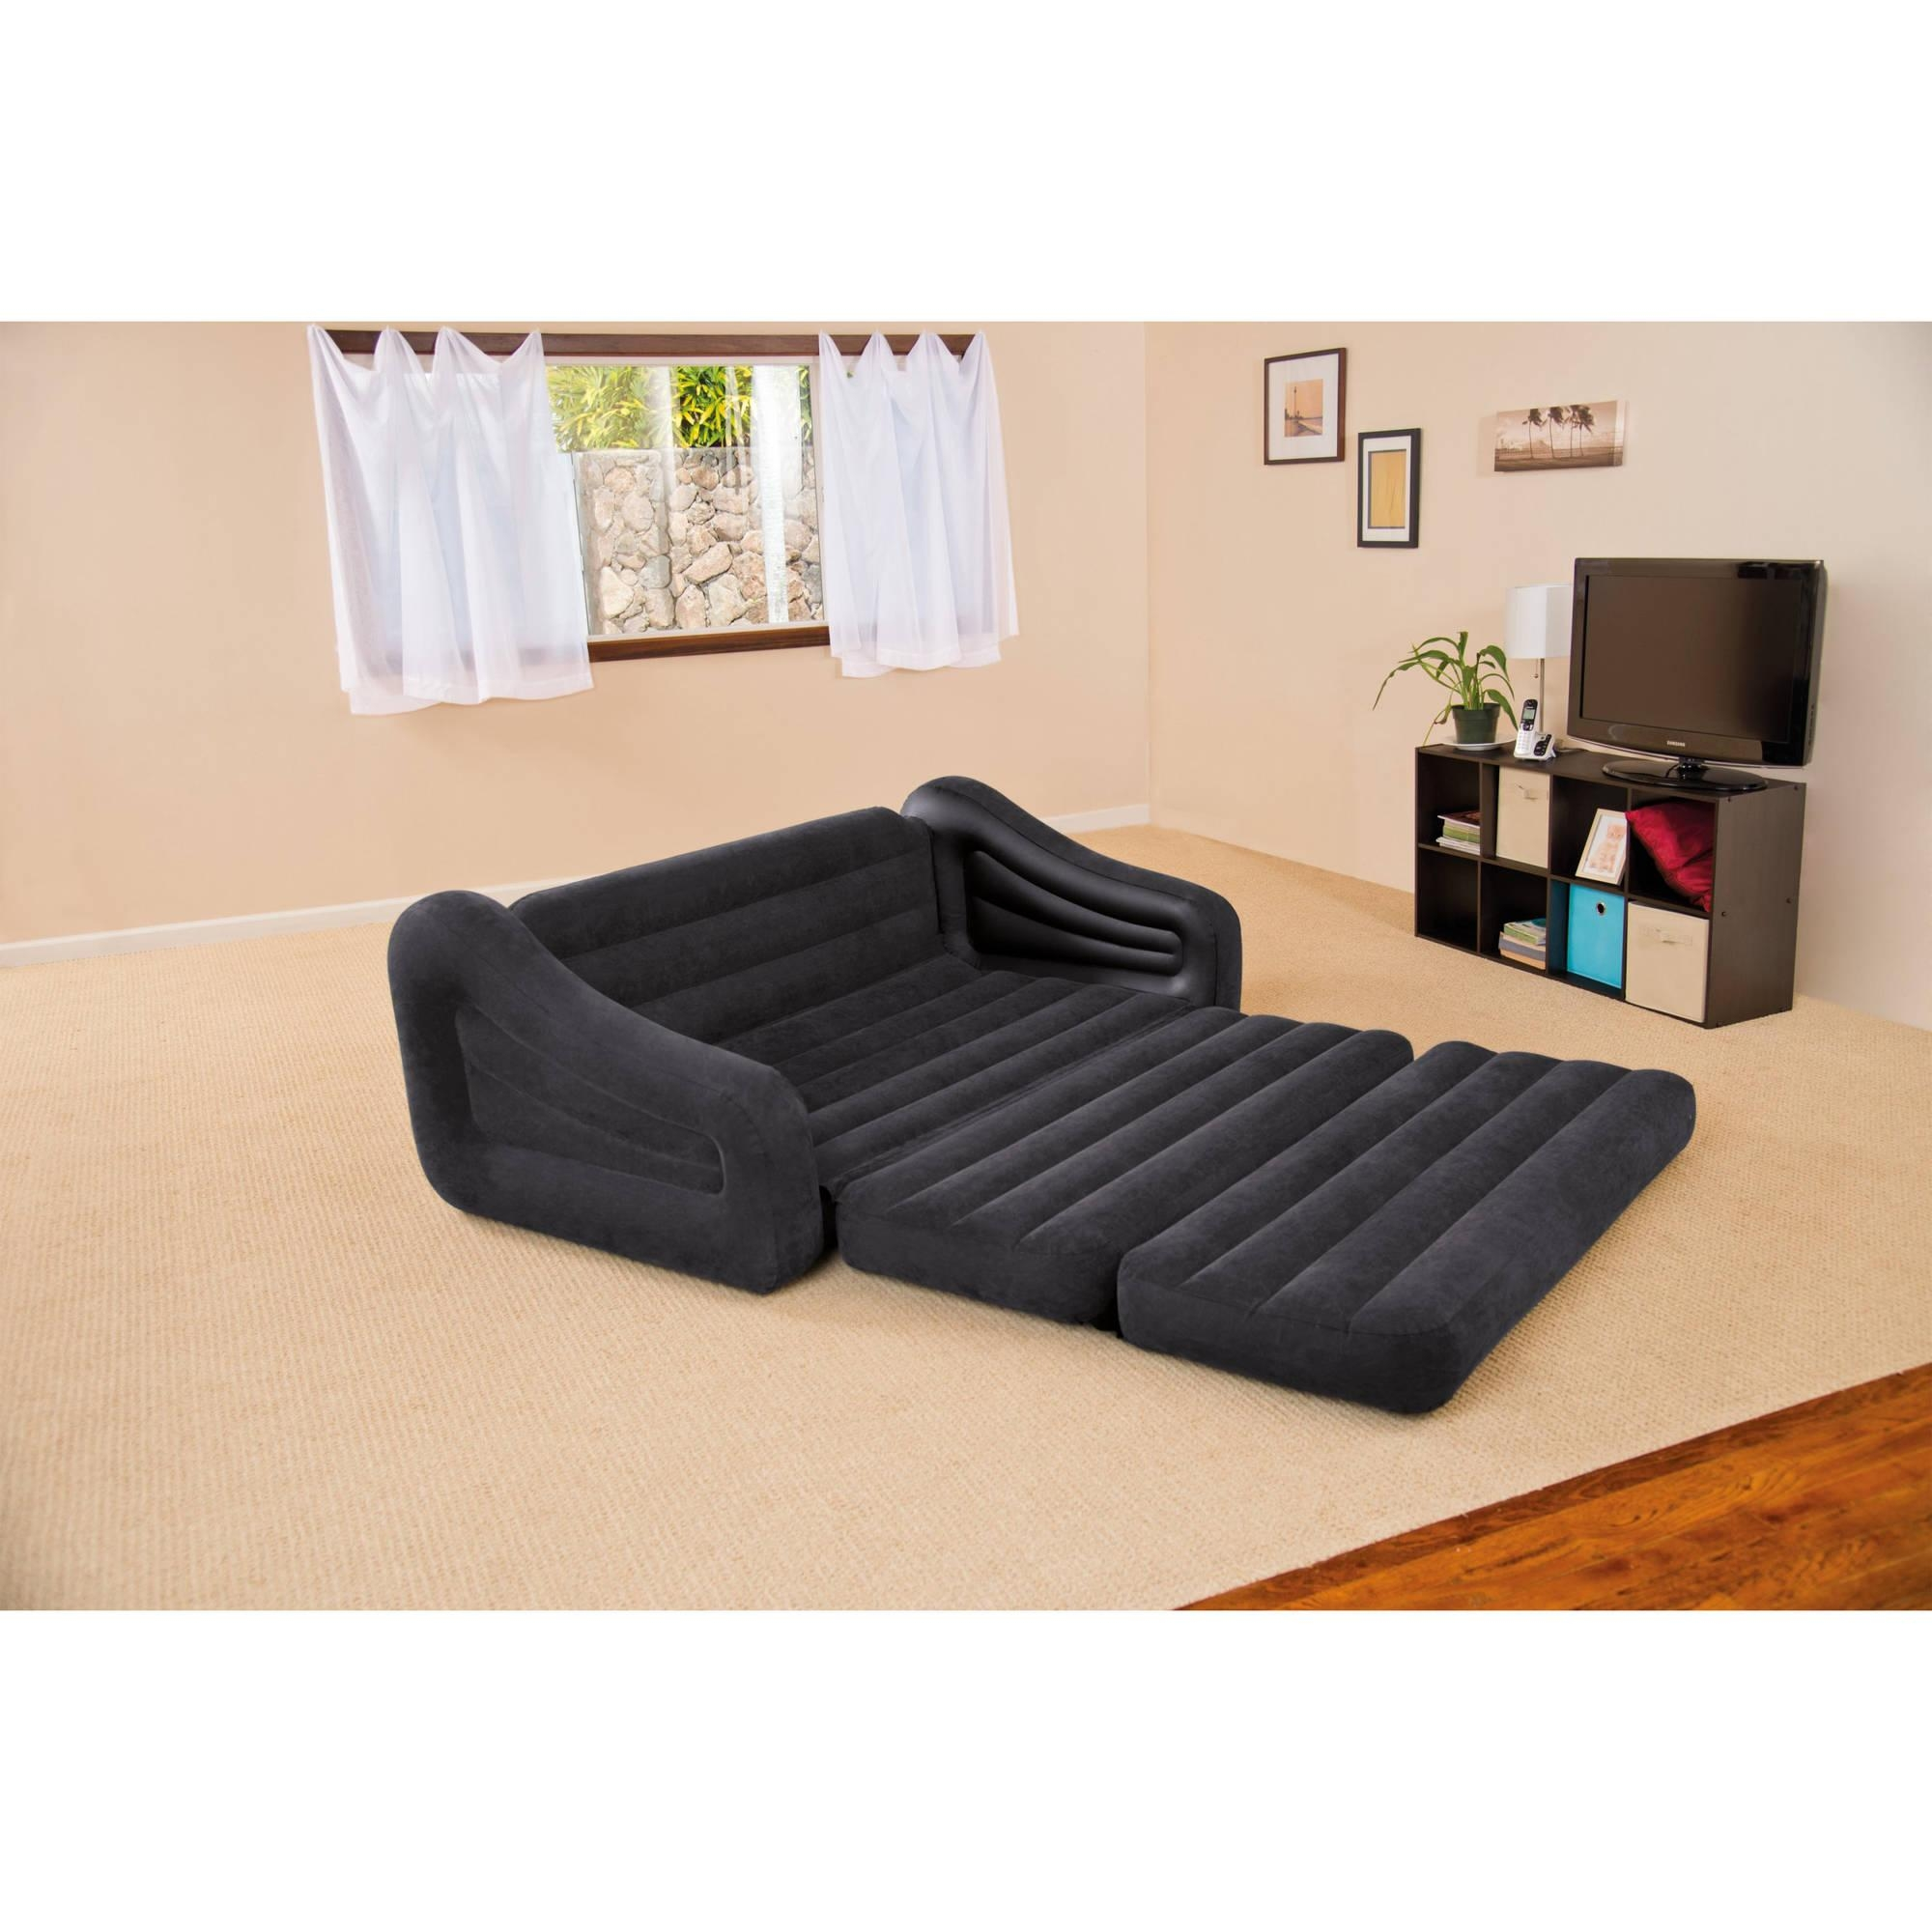 Intex Queen Inflatable Pull Out Sofa Bed – Walmart Throughout Queen Sofa Beds (View 10 of 20)